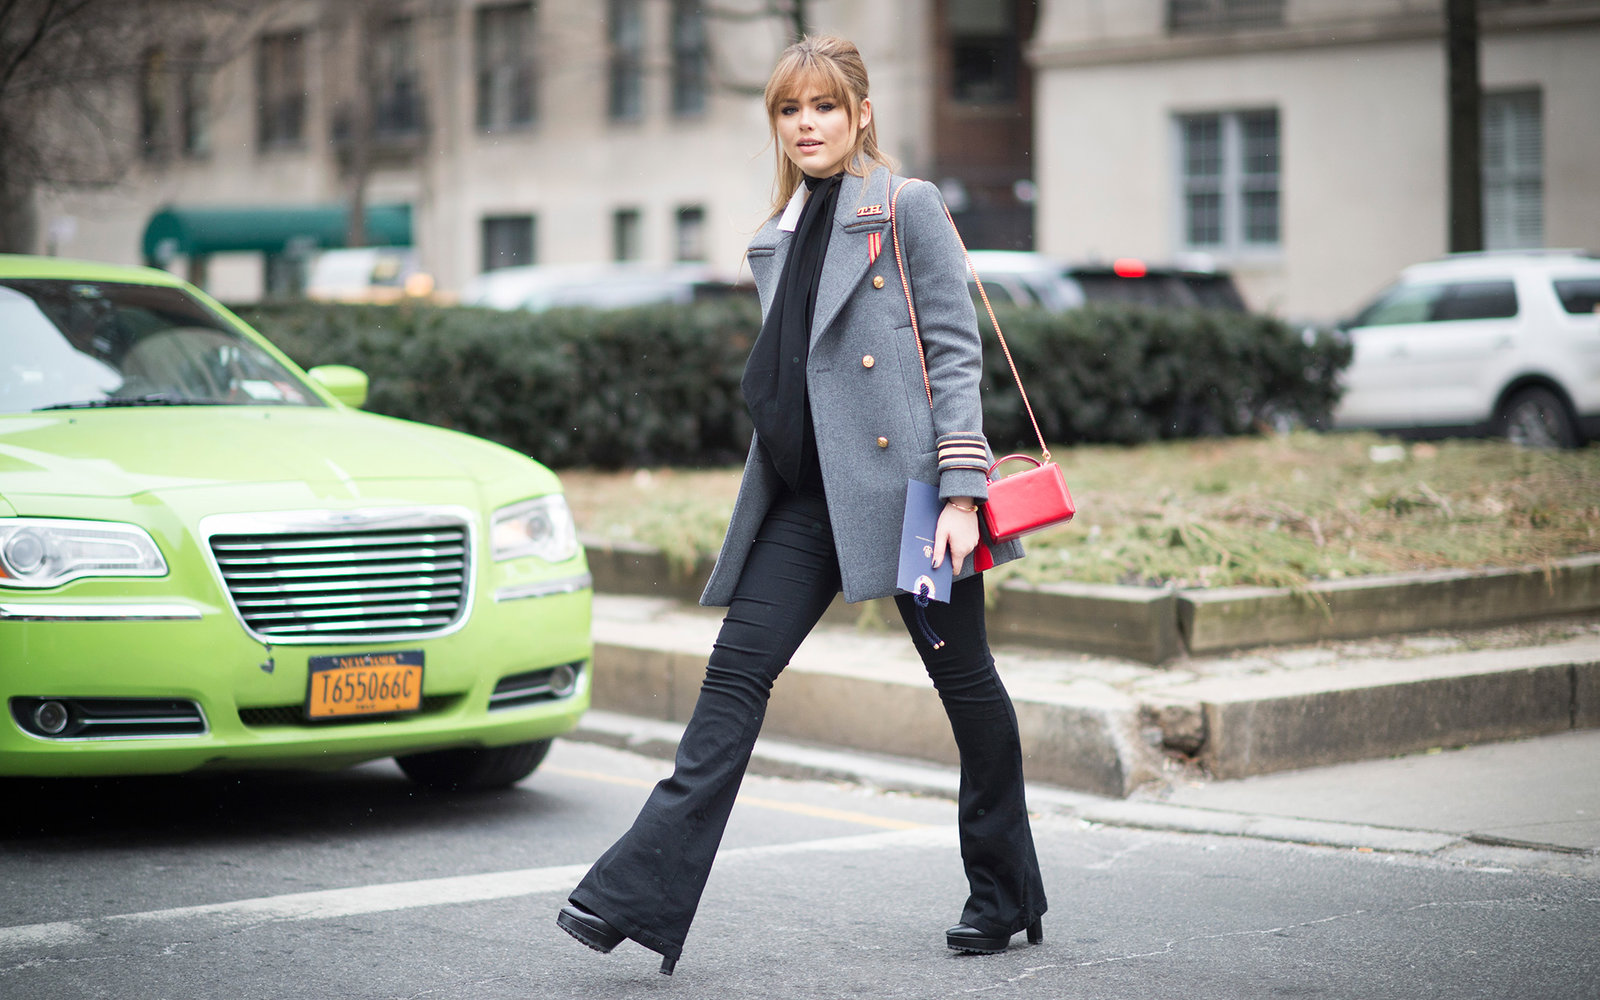 NEW YORK, NY - FEBRUARY 15:  Kristina Bazan is wearing a jacket and pants from Tommy Hilfiger seen in the streets of Manhattan during New York Fashion Week: Women's Fall/Winter 2016 on February 15, 2016 in New York City.  (Photo by Timur Emek/Getty Images